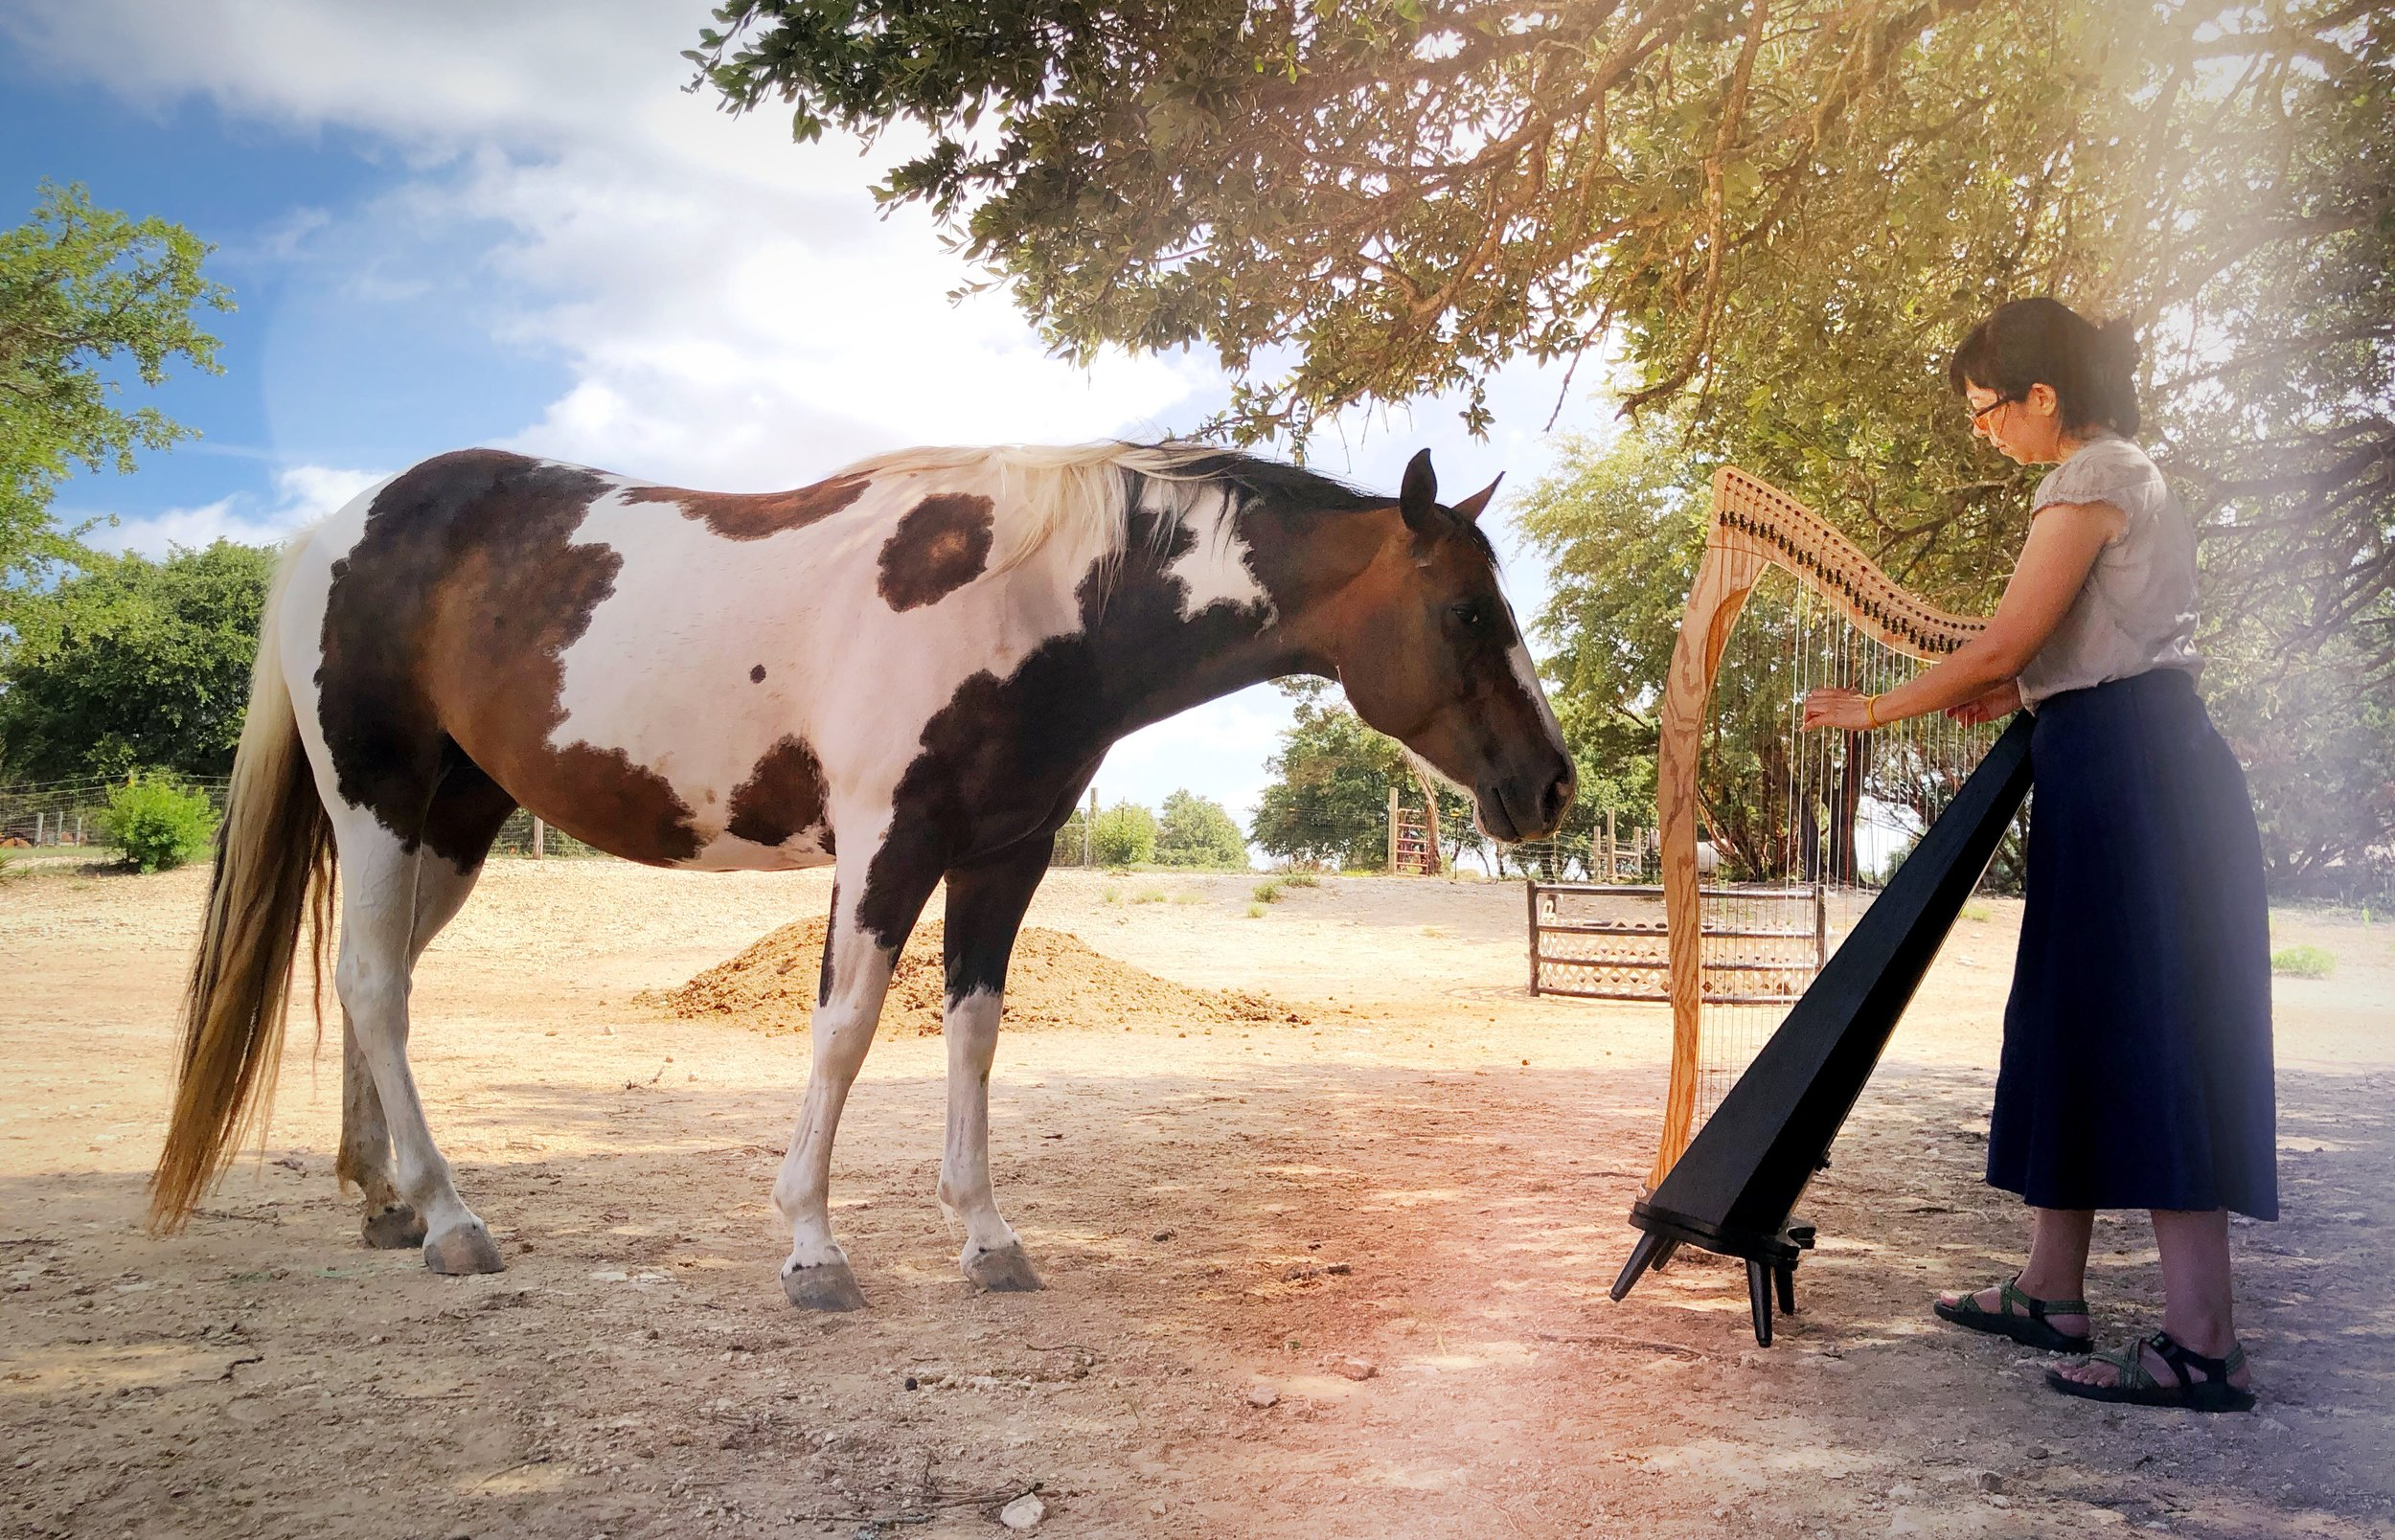 Connecting inward through sound - A space of deep listening in the setting of a peaceful horse ranch.